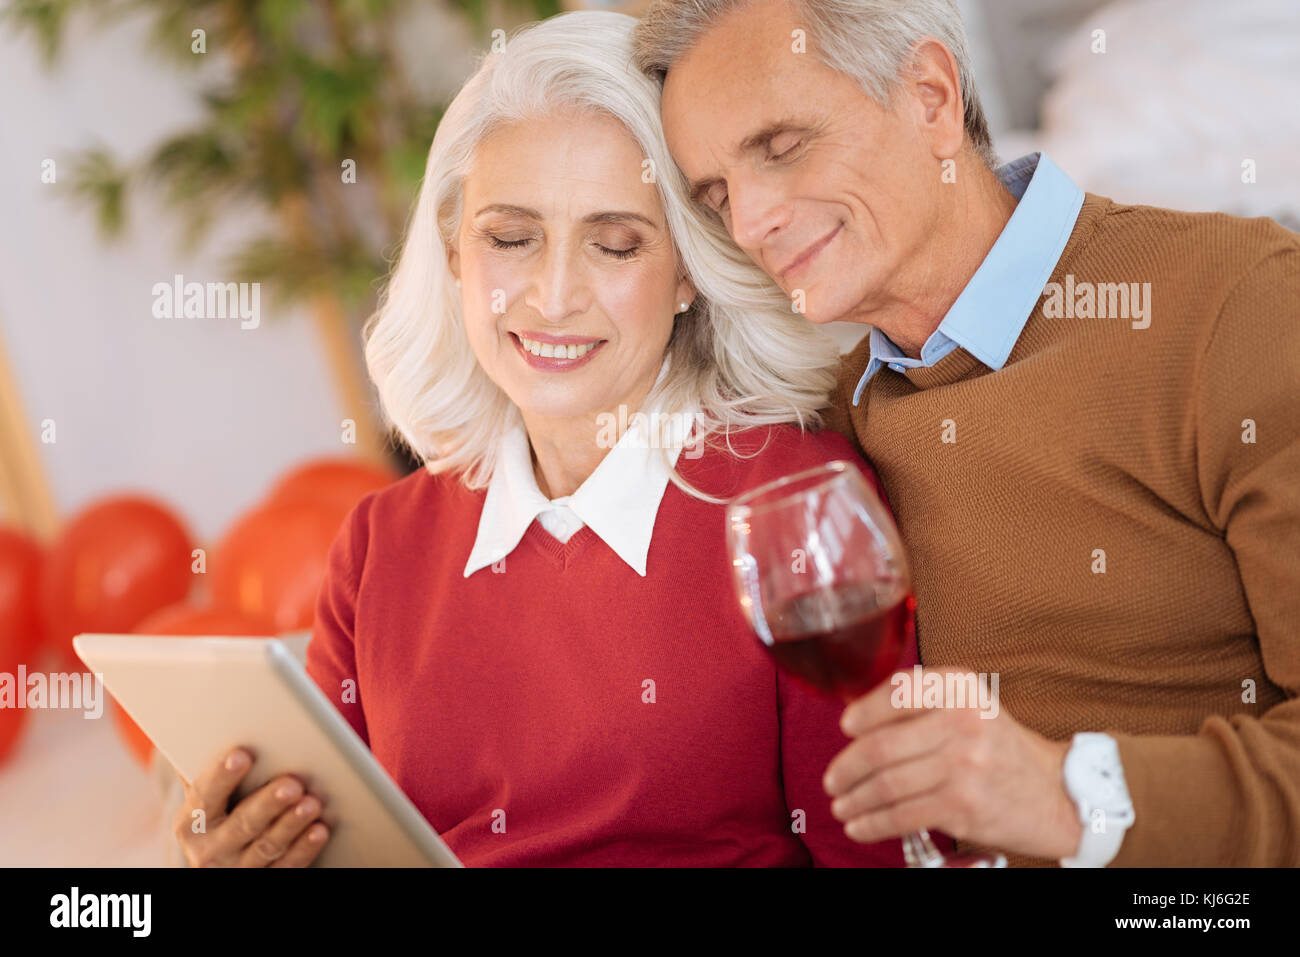 Loving retired husband and wife enjoying their moment together - Stock Image